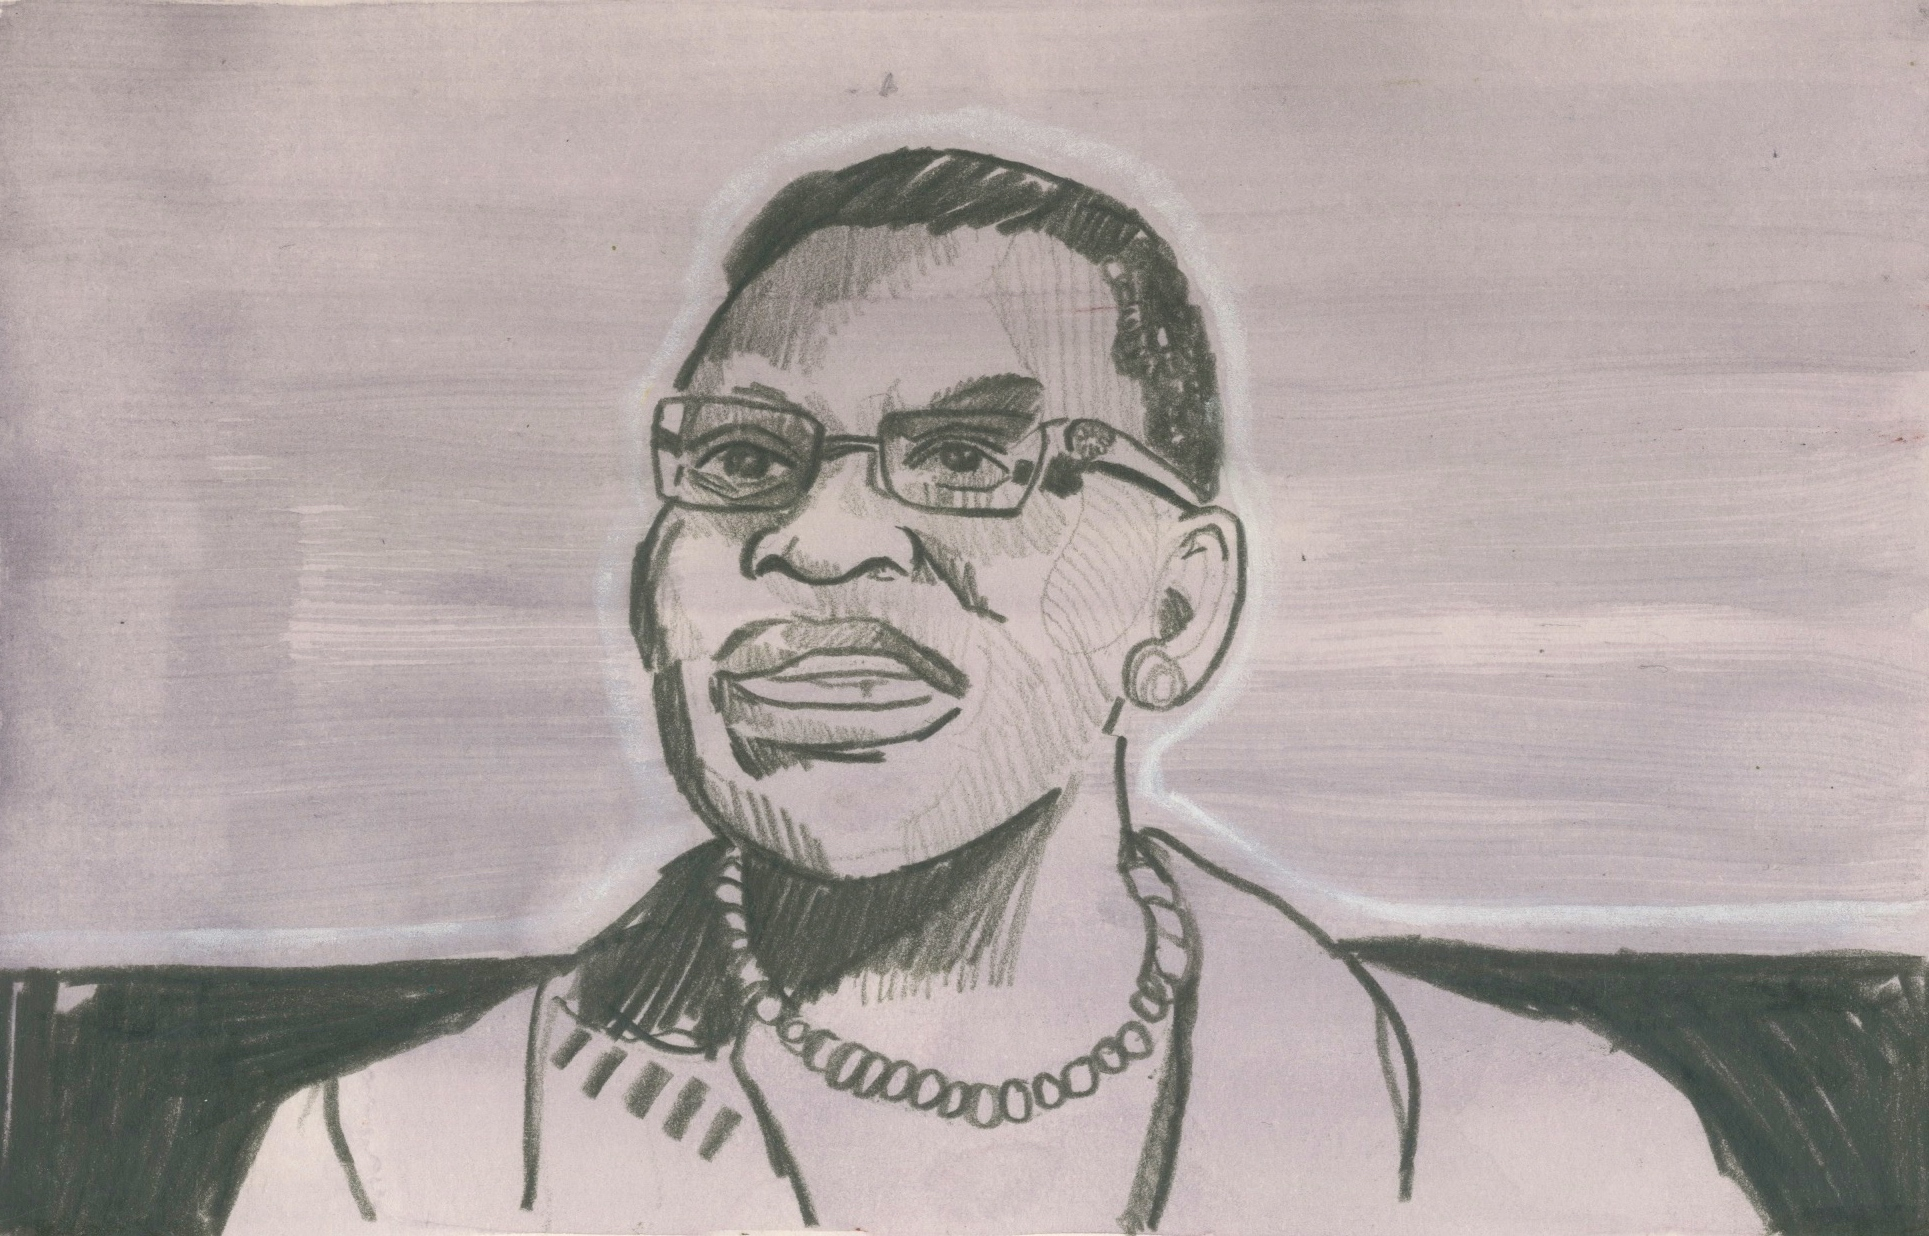 14/04/15 Oby Ezekwesili was one of the three campaigners to set up the grassroots campaign #bringbackourgirls. Today marks one year since 276 school girls were abducted by Boko Haram in the northern Nigerian village of Chibok. A year on, none of the girls have been found or rescued.